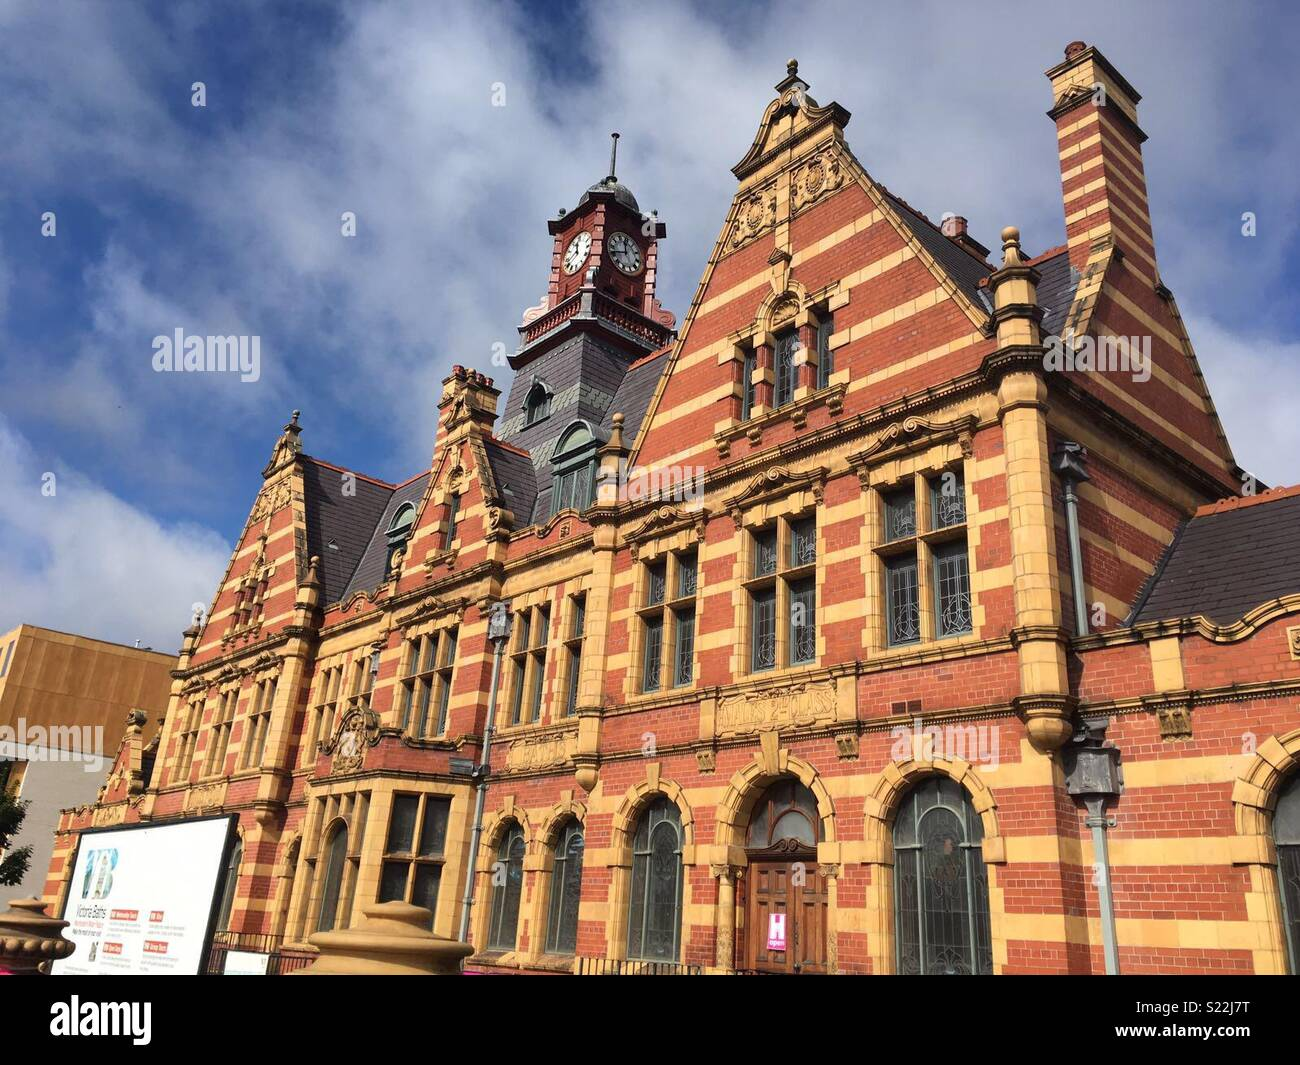 The front of Victoria baths in manchester, wedding venue and filming locations for peaky blinders. - Stock Image